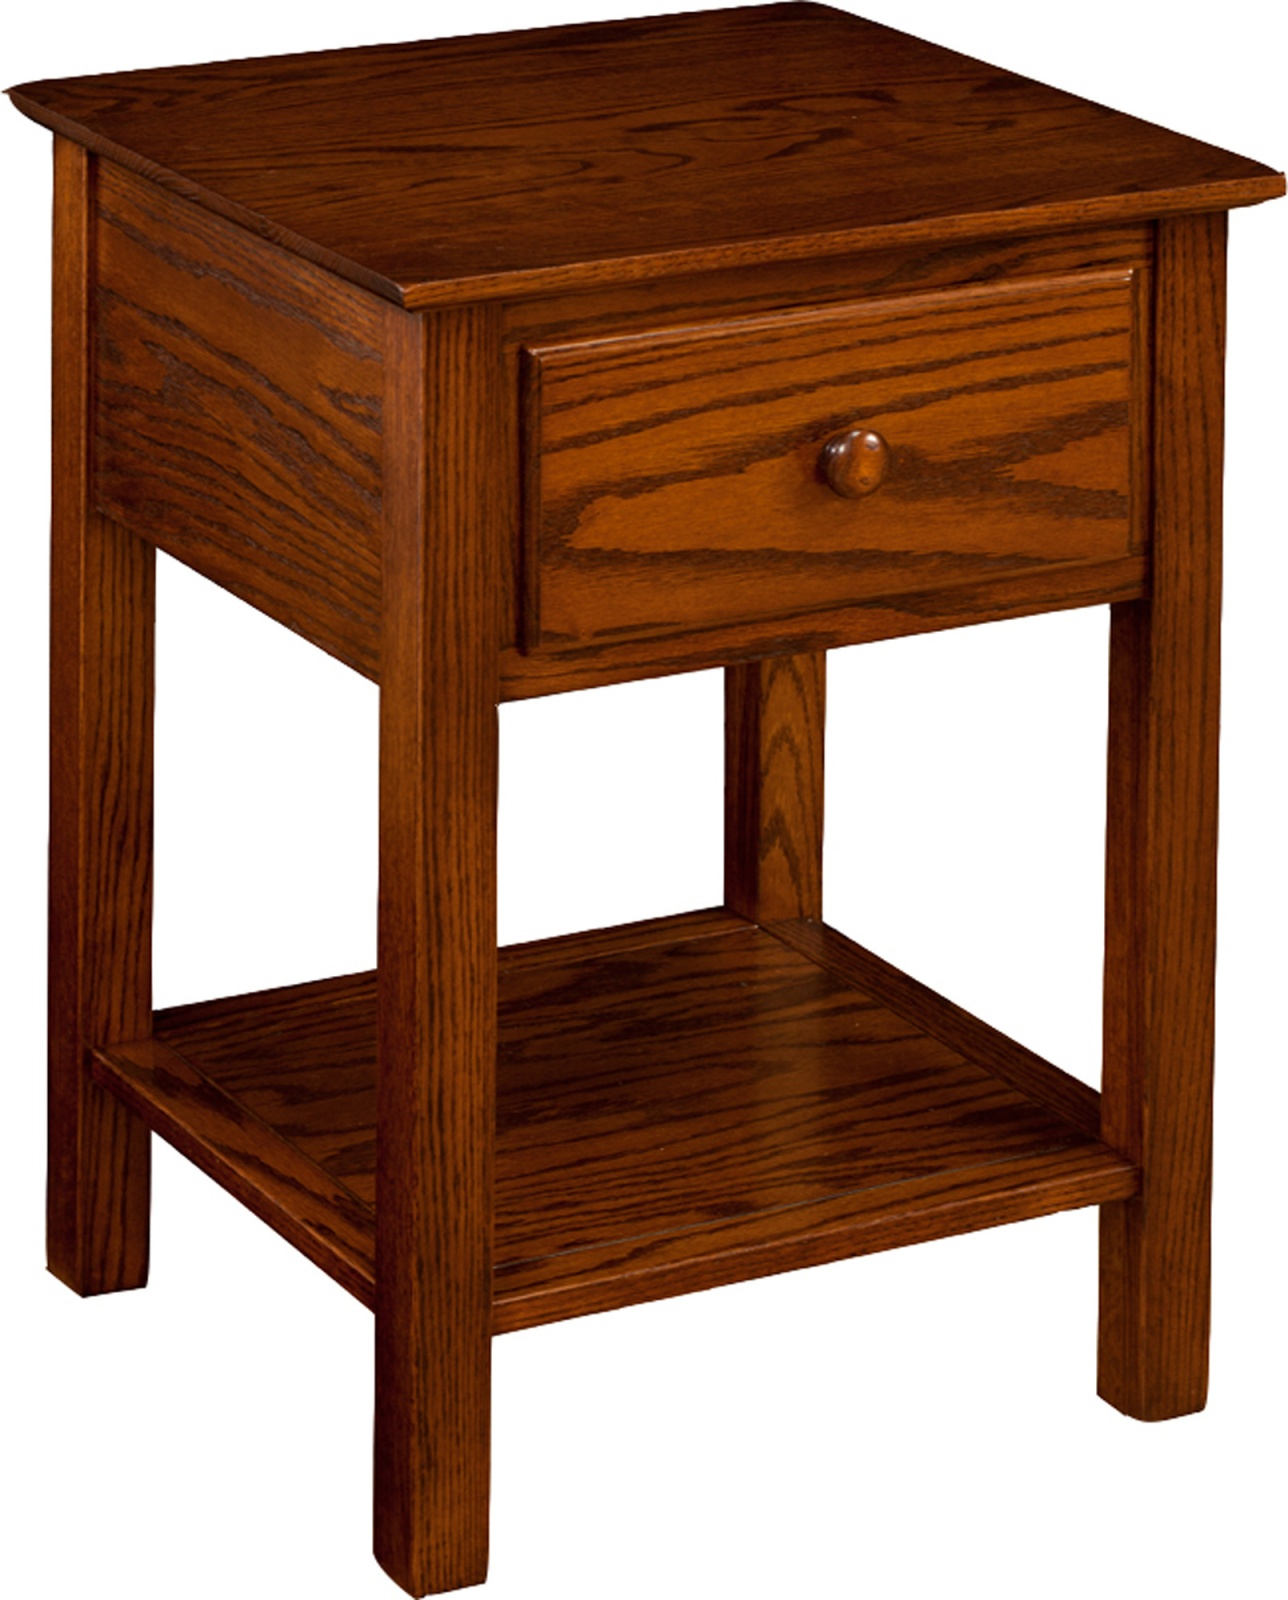 TB-61 Table Night Stand.jpg